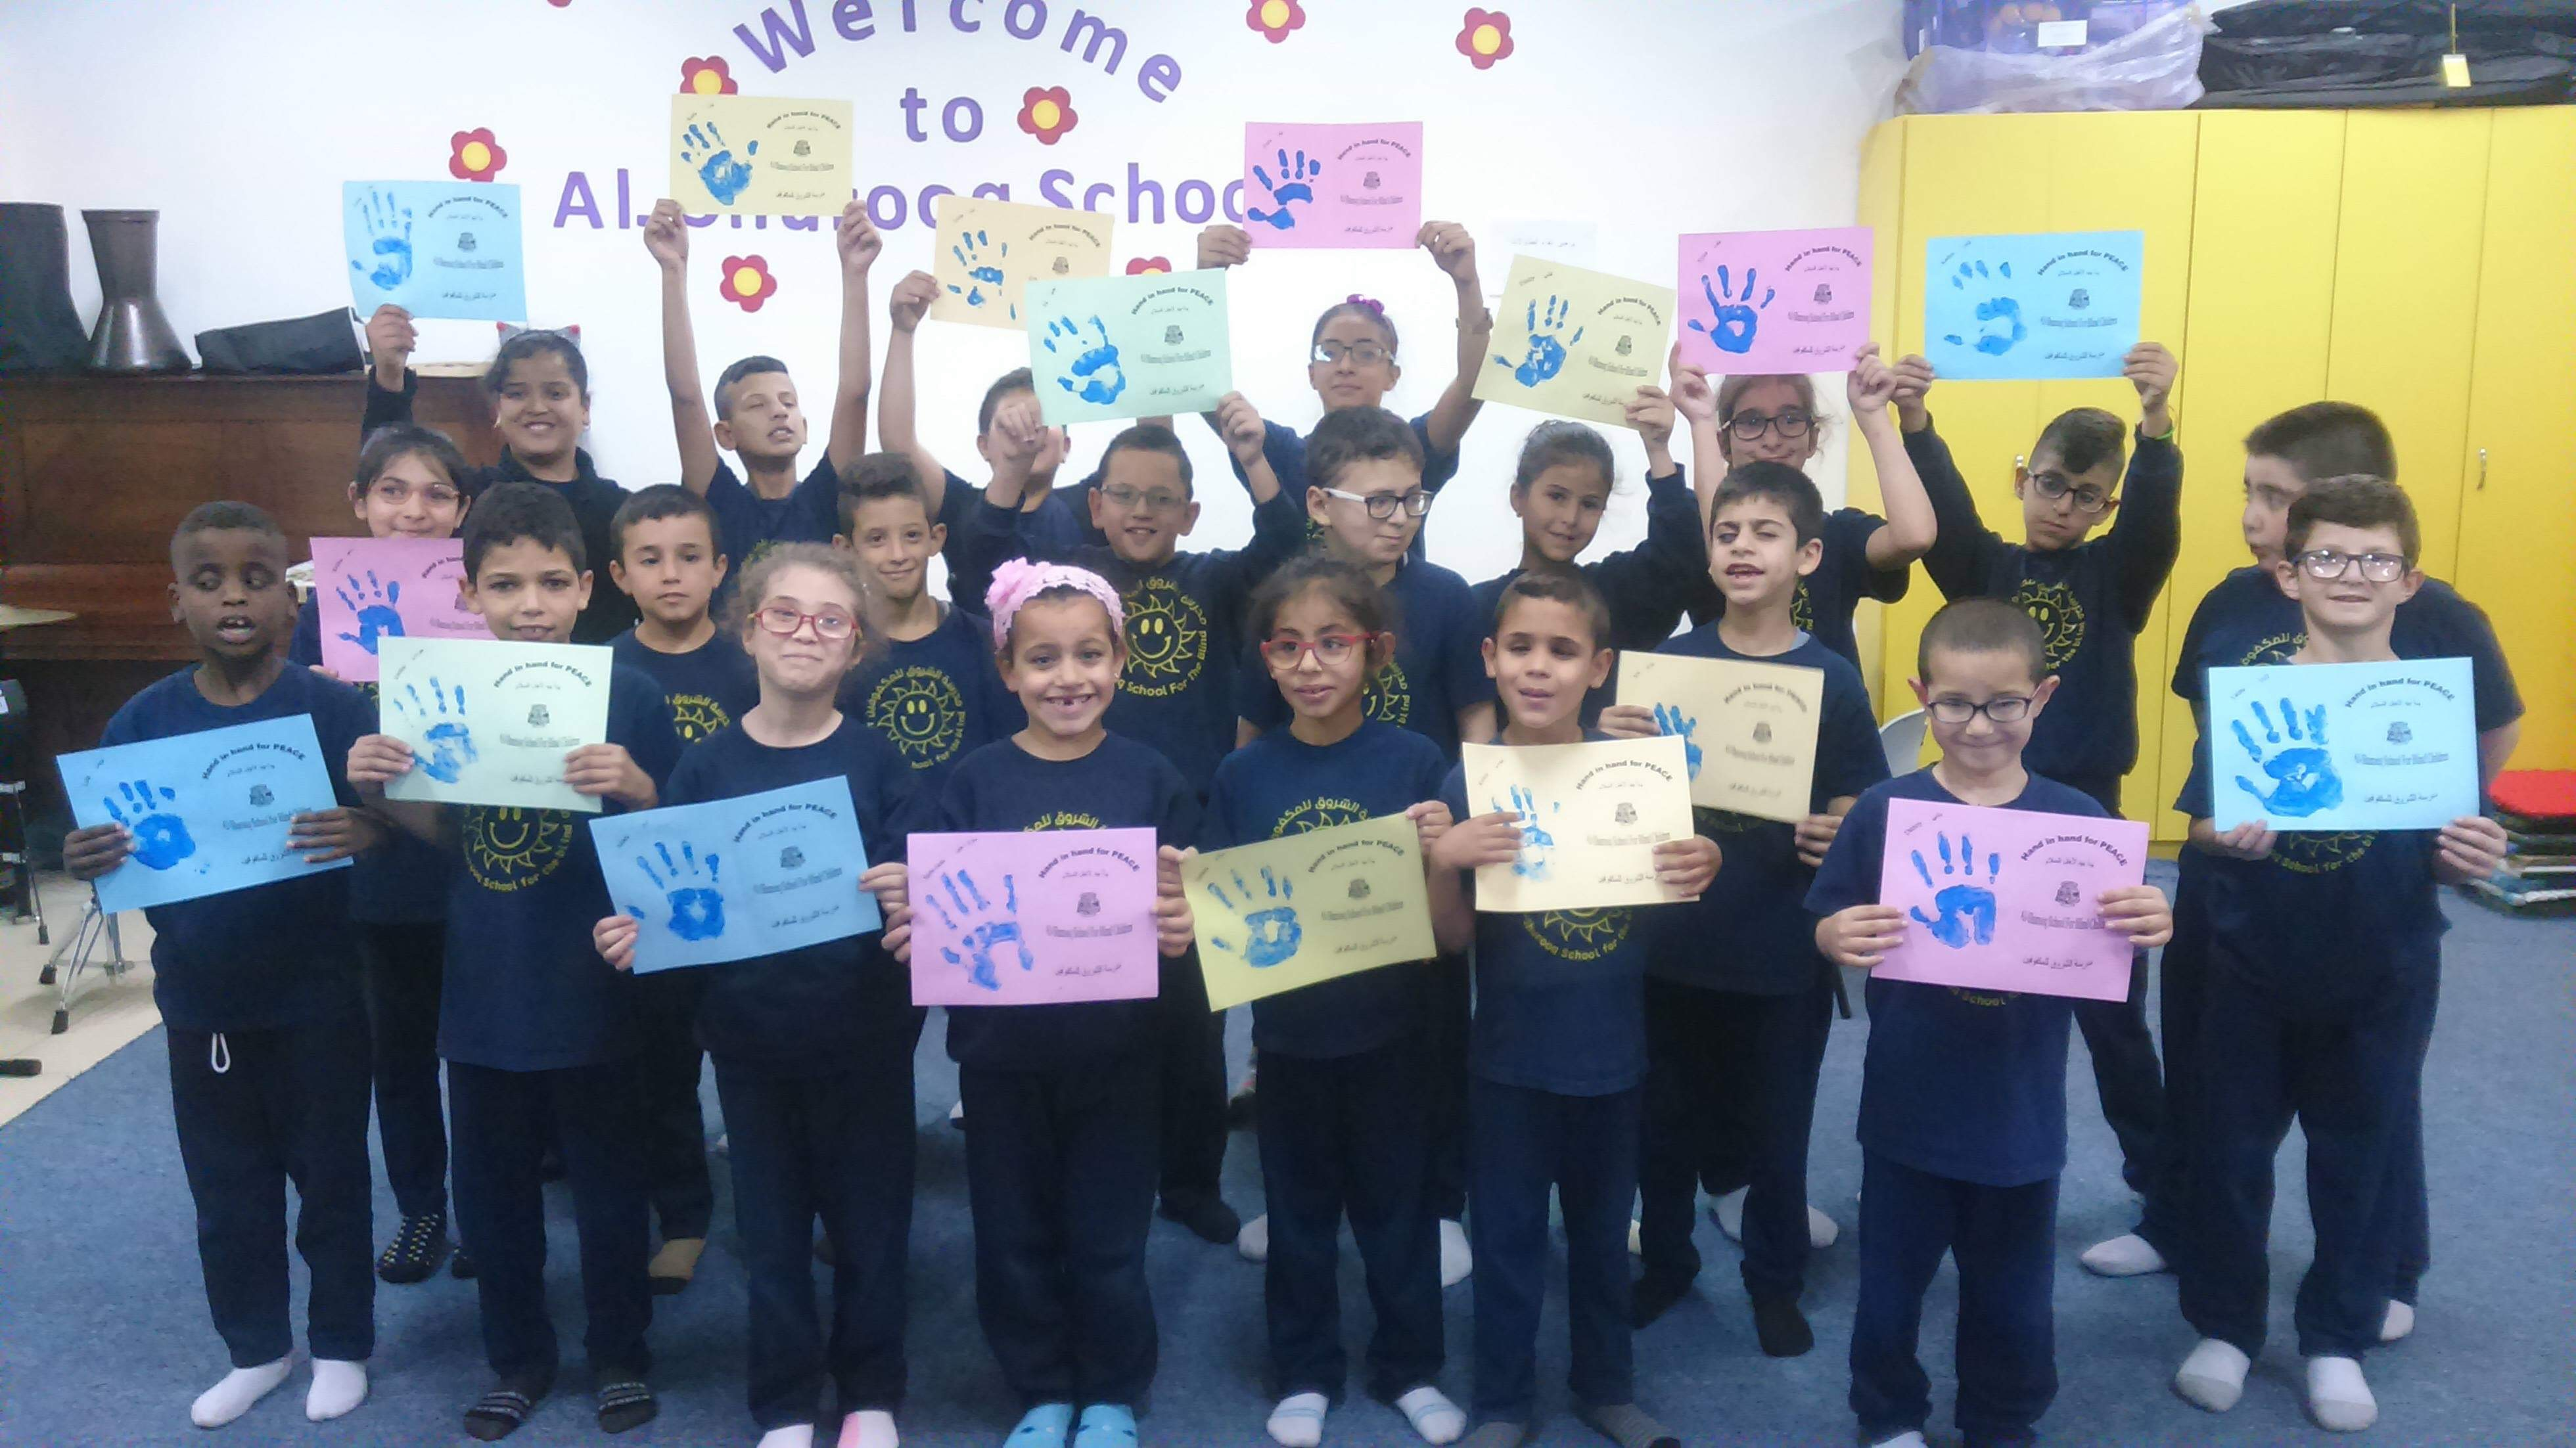 Al Shurooq pupils with peace cards to send to Lockerbie